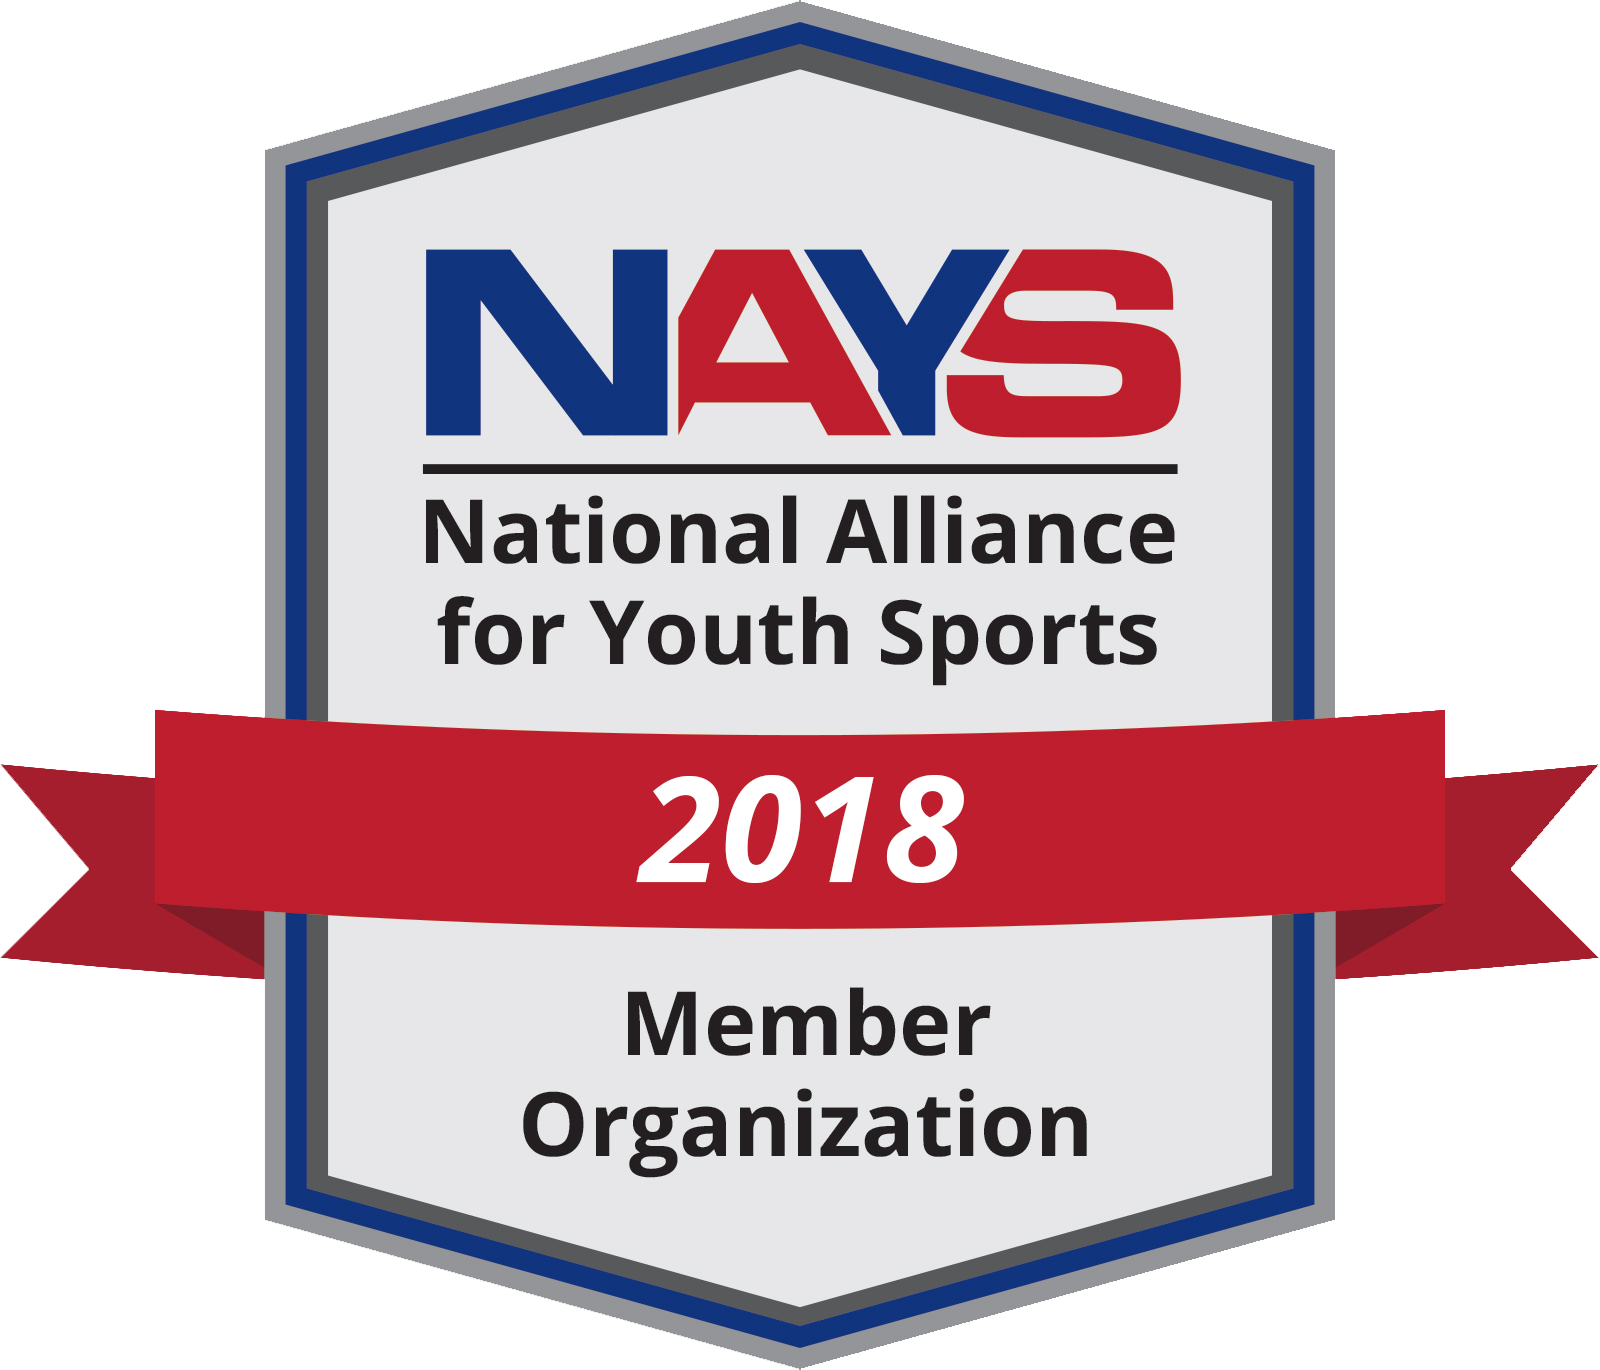 National Alliance for Youth Sports, a nonprofit 501(c)(3) organization, is America's leading advocate for positive and safe sports activities for children. Since 1981, NAYS has partnered with more than 3,000 youth organizations to improve programming and